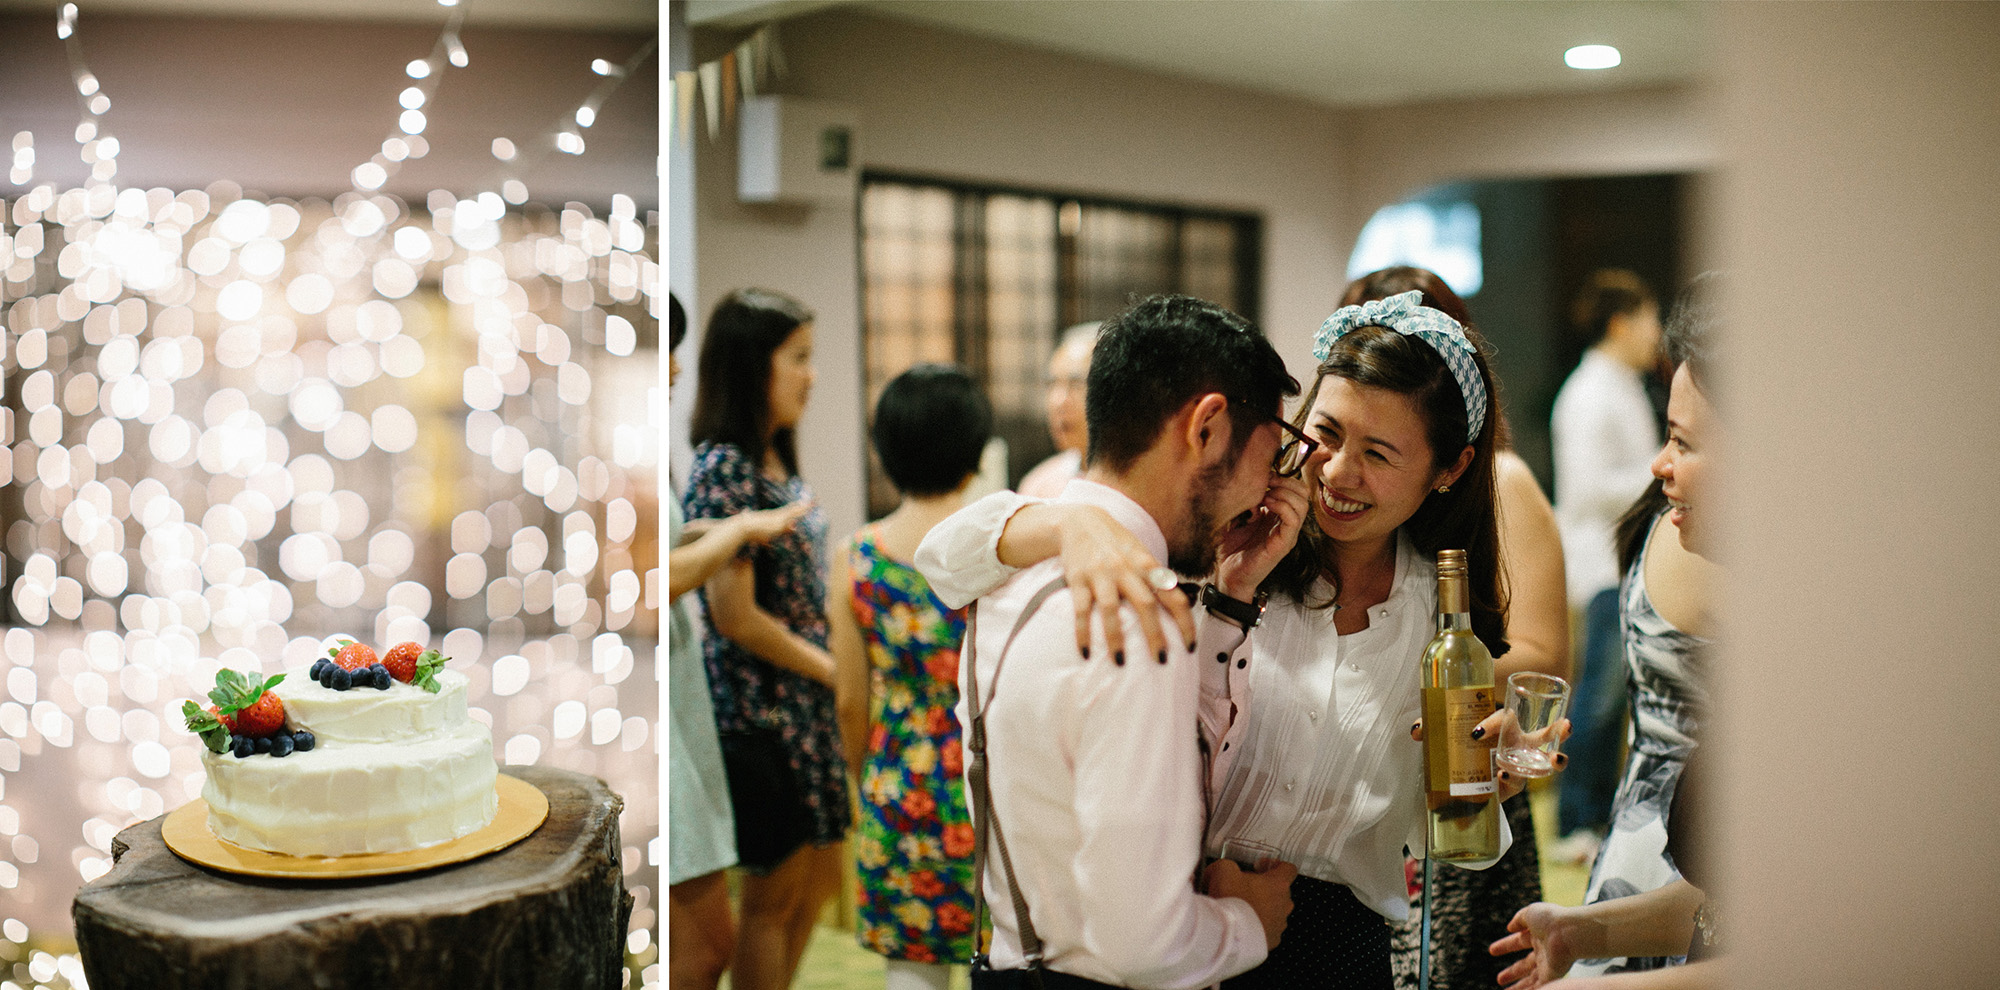 103-hellojanelee-sam grace-malaysia-wedding-day